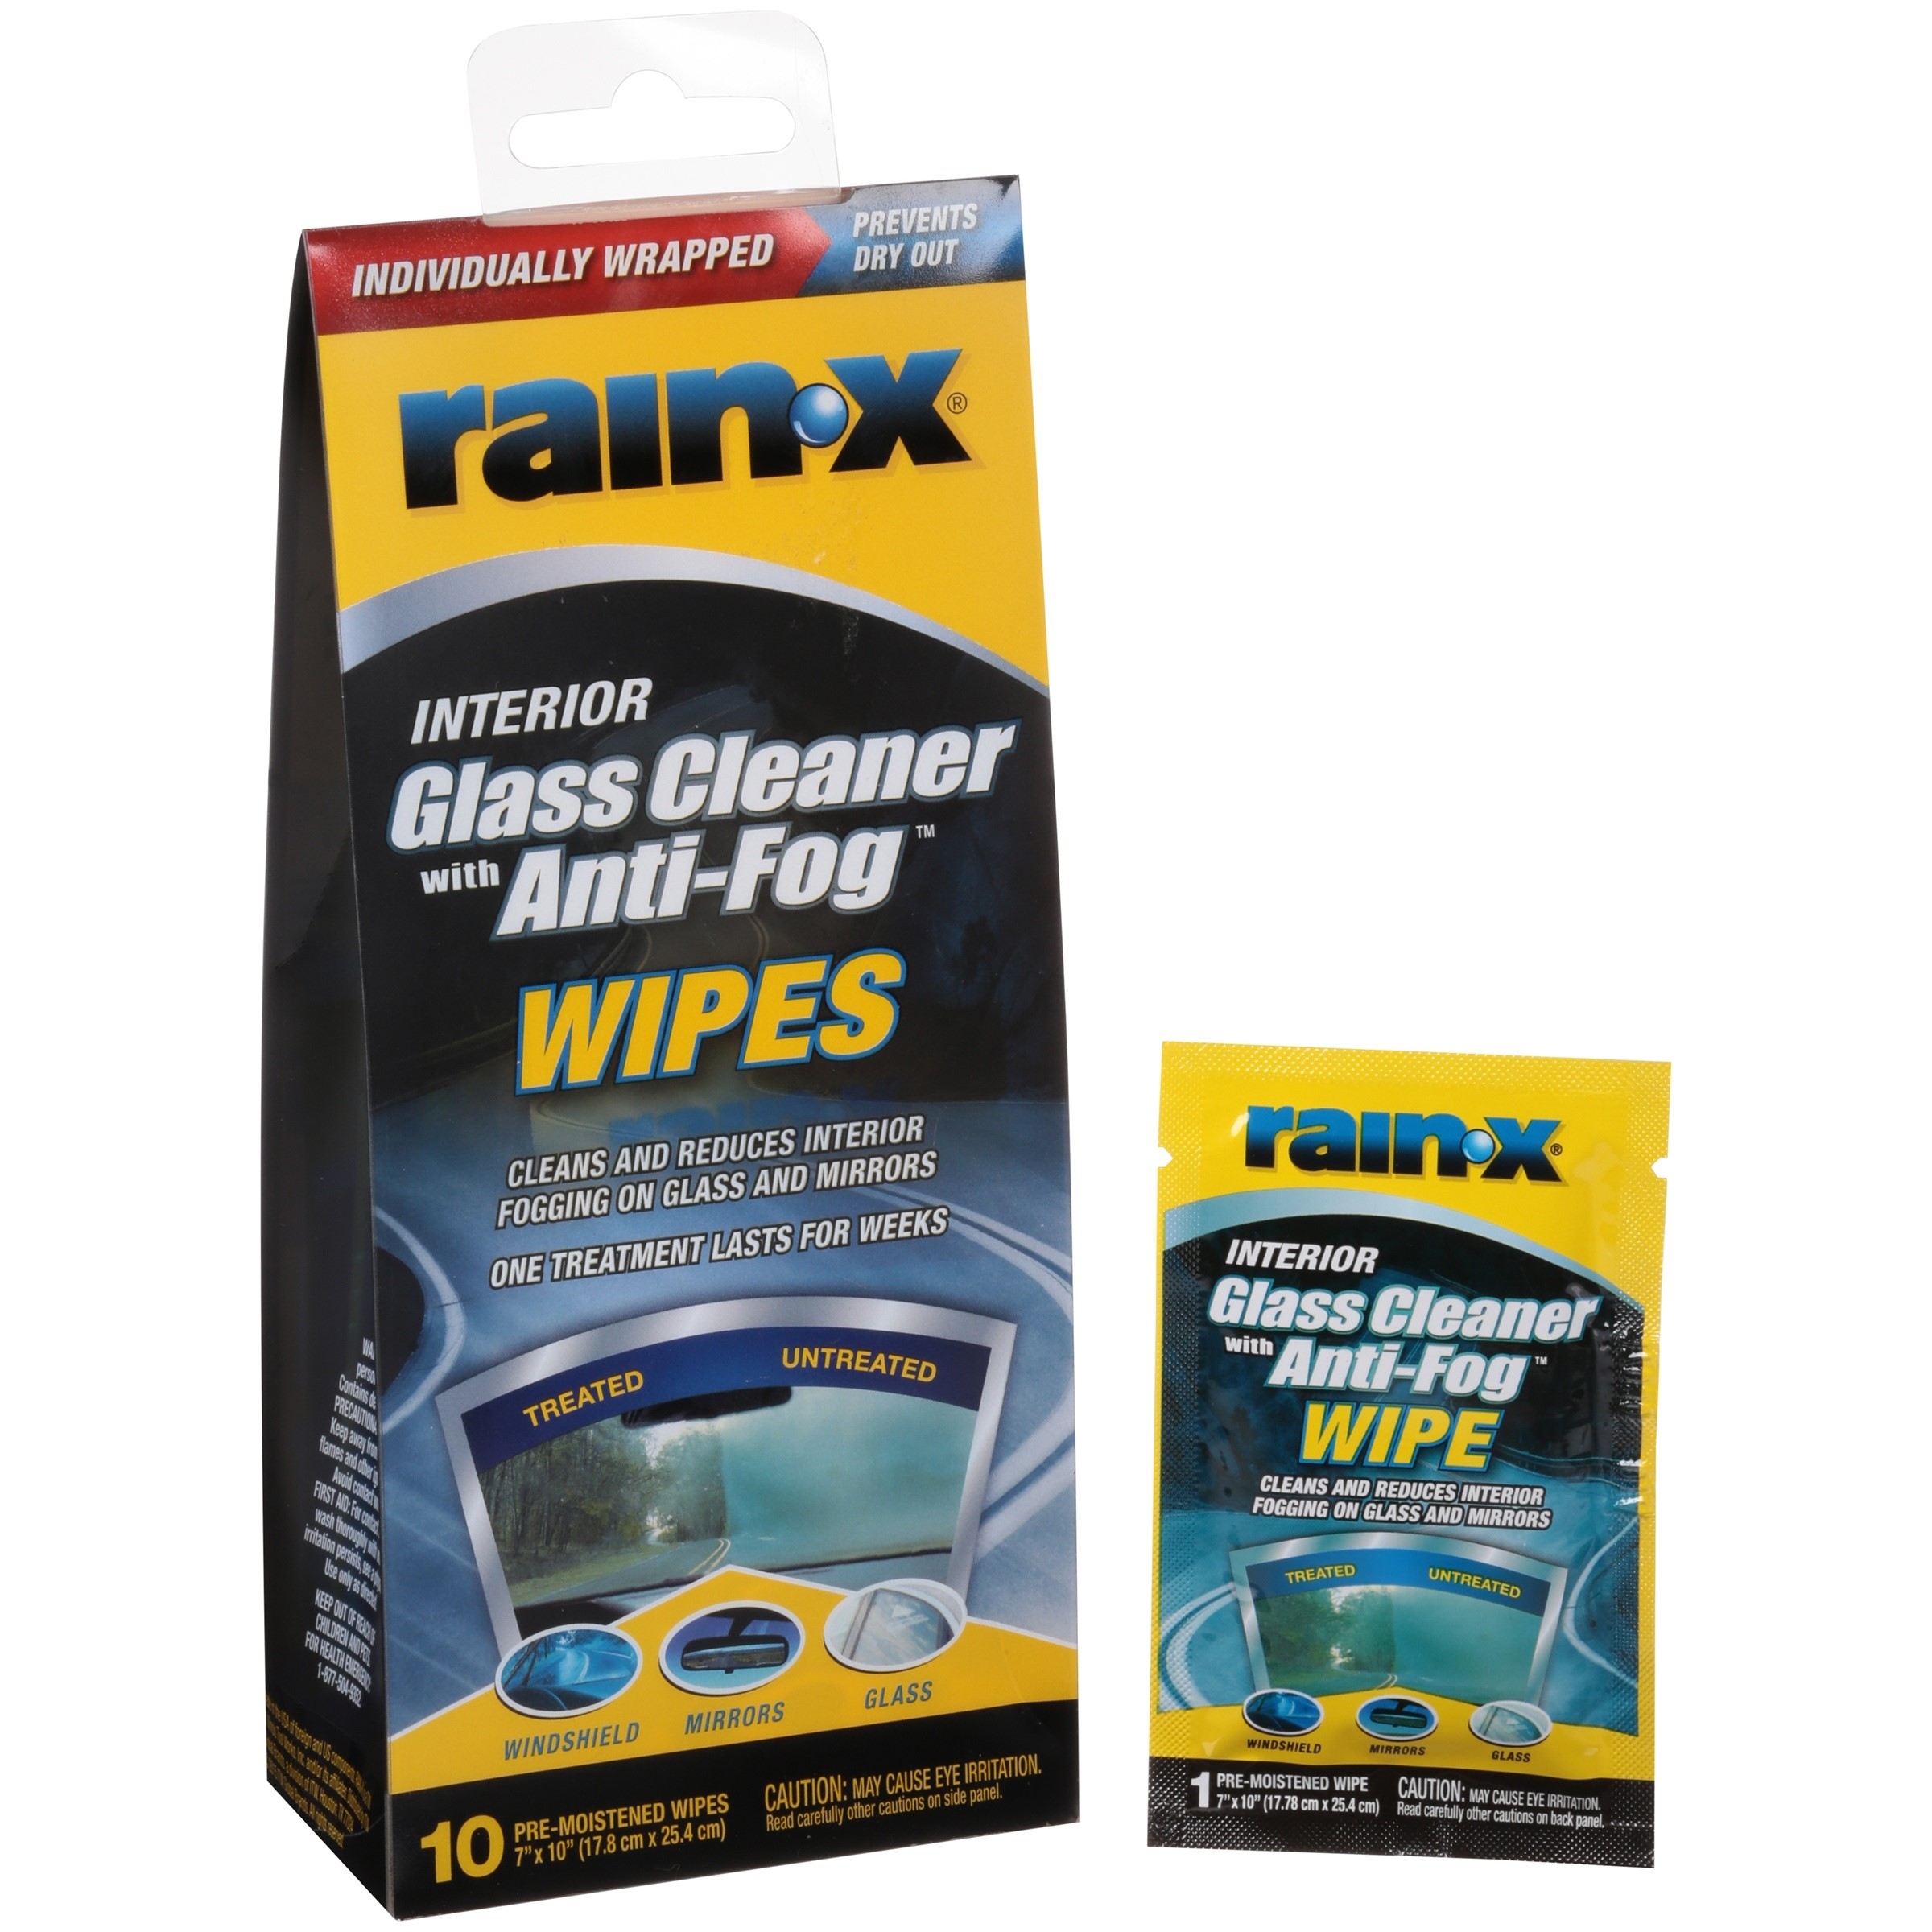 Rain-X Interior Glass Cleaner with Anti-Fog Wipes, 10ct - 630040